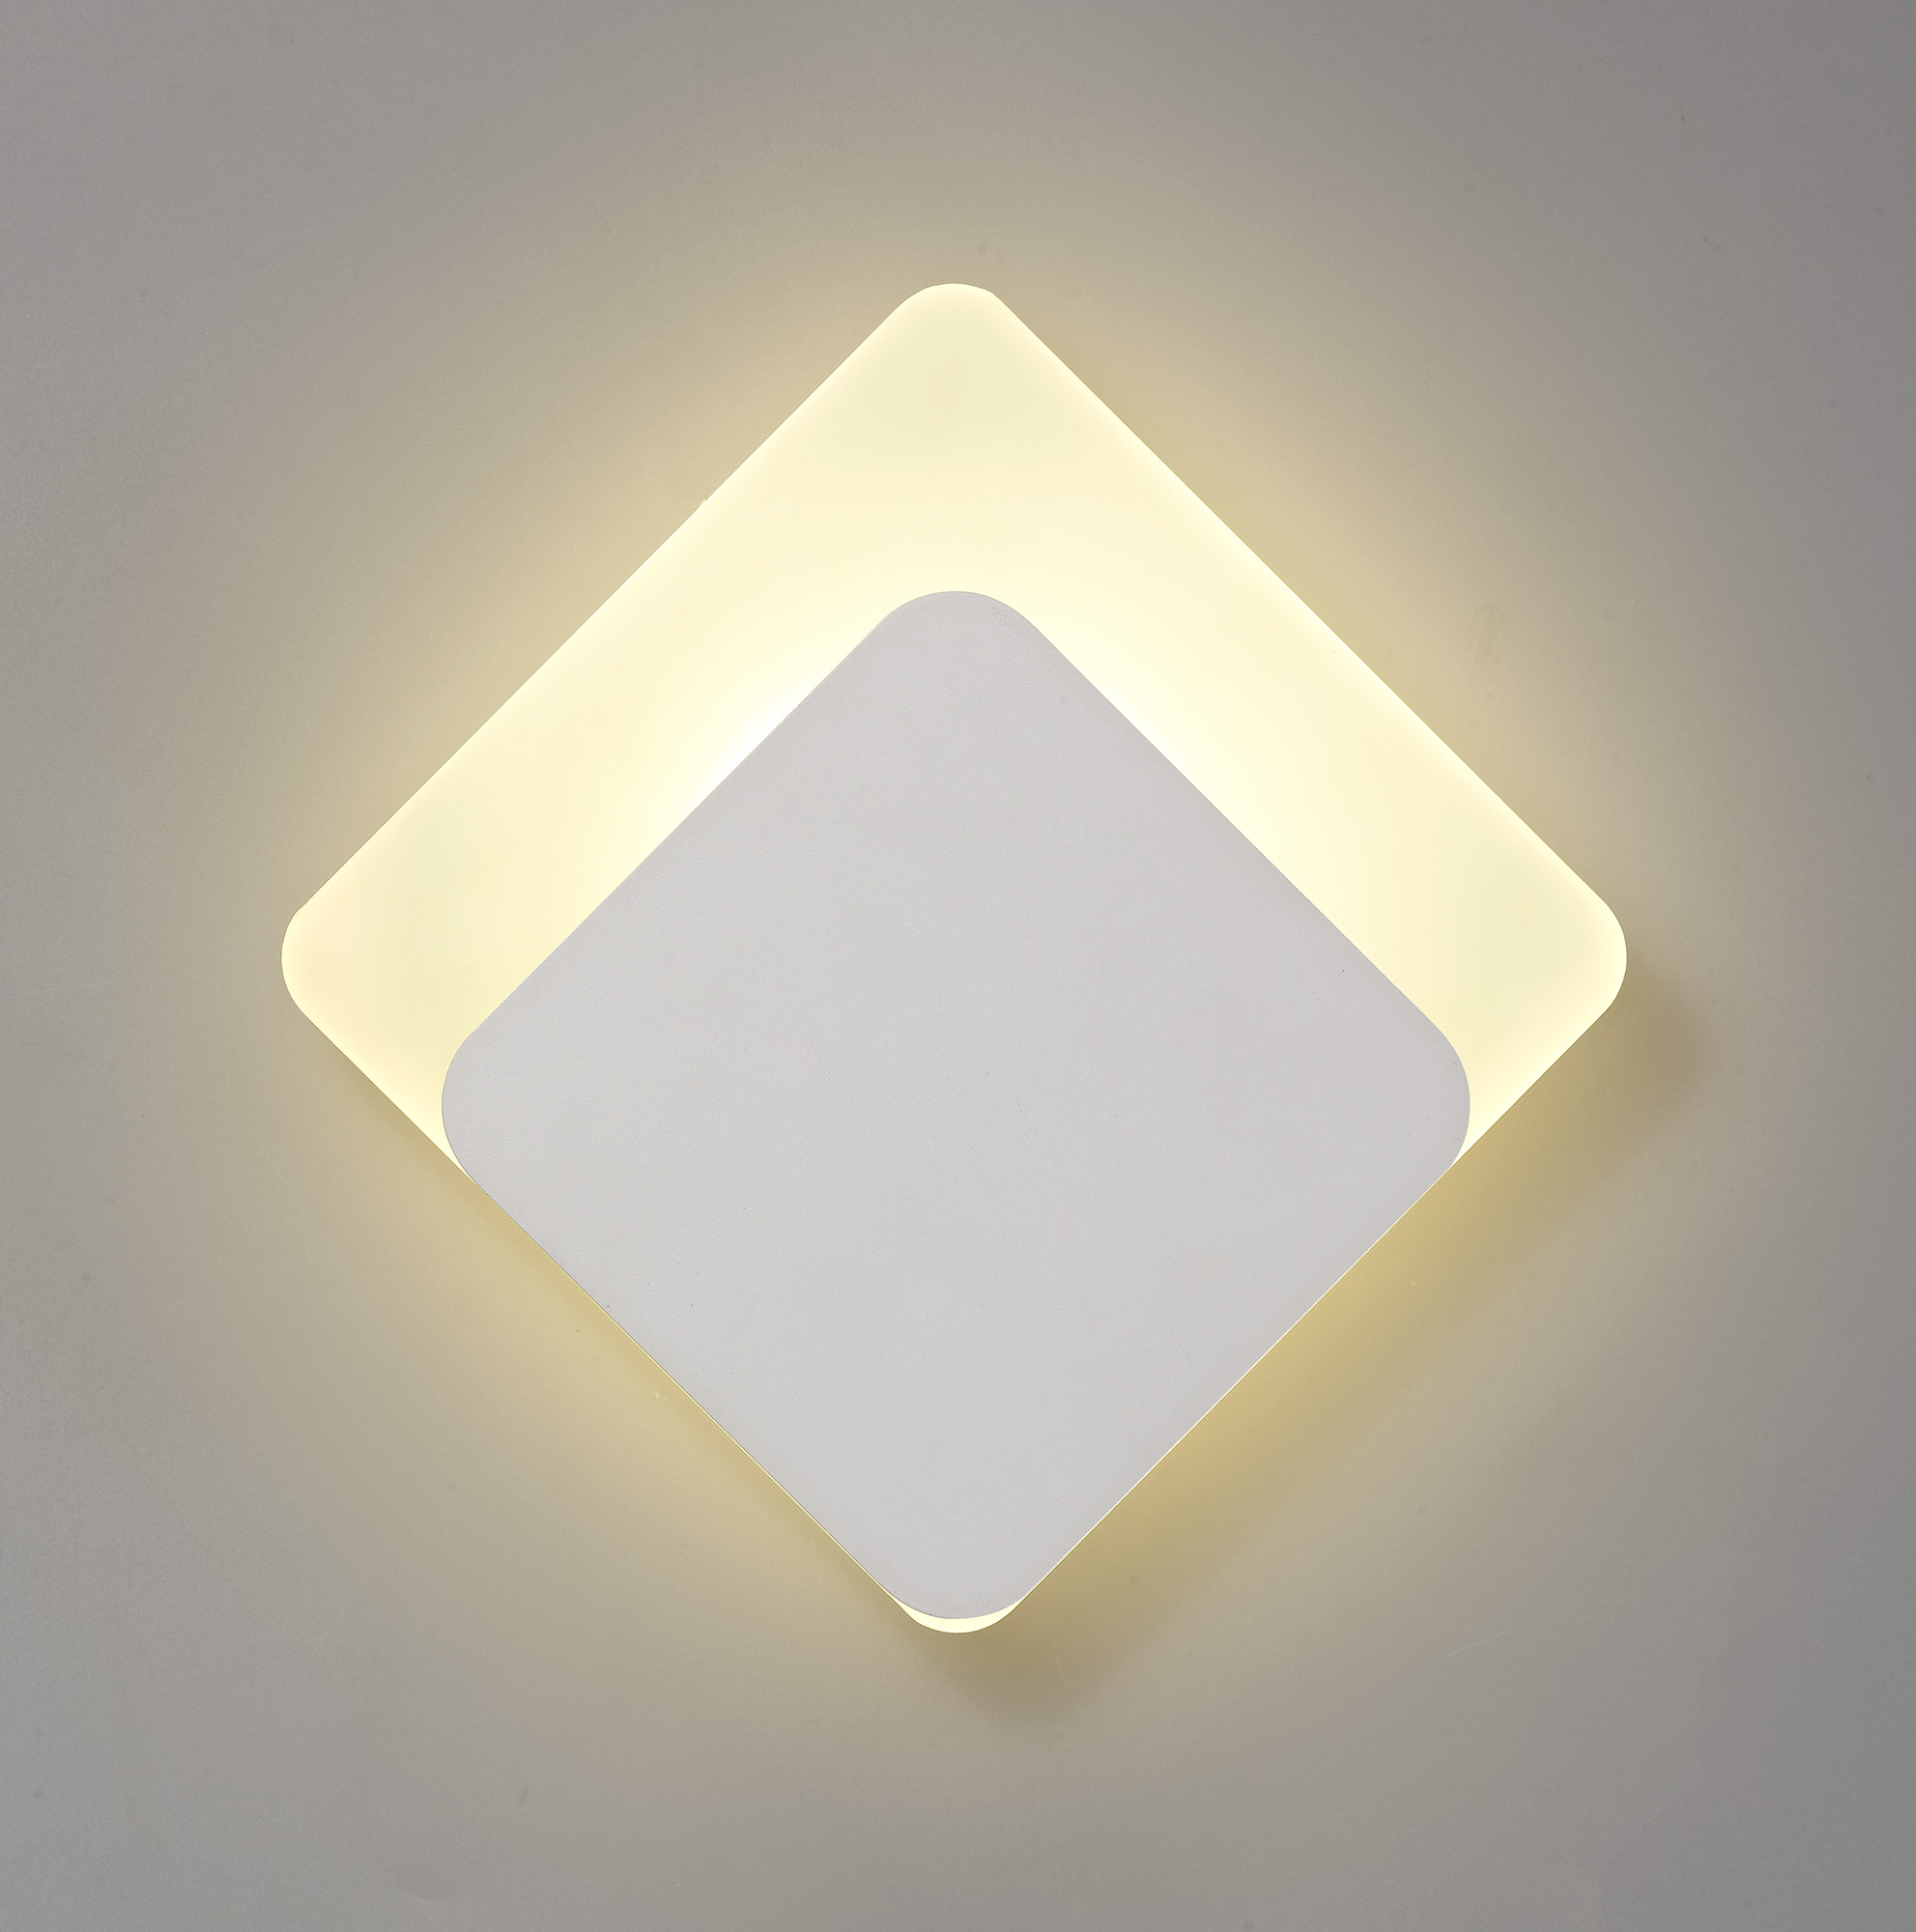 Magnetic Base Wall Lamp, 12W LED 3000K 498lm, 15/19cm Diamond Centre, Frosted Diffuser